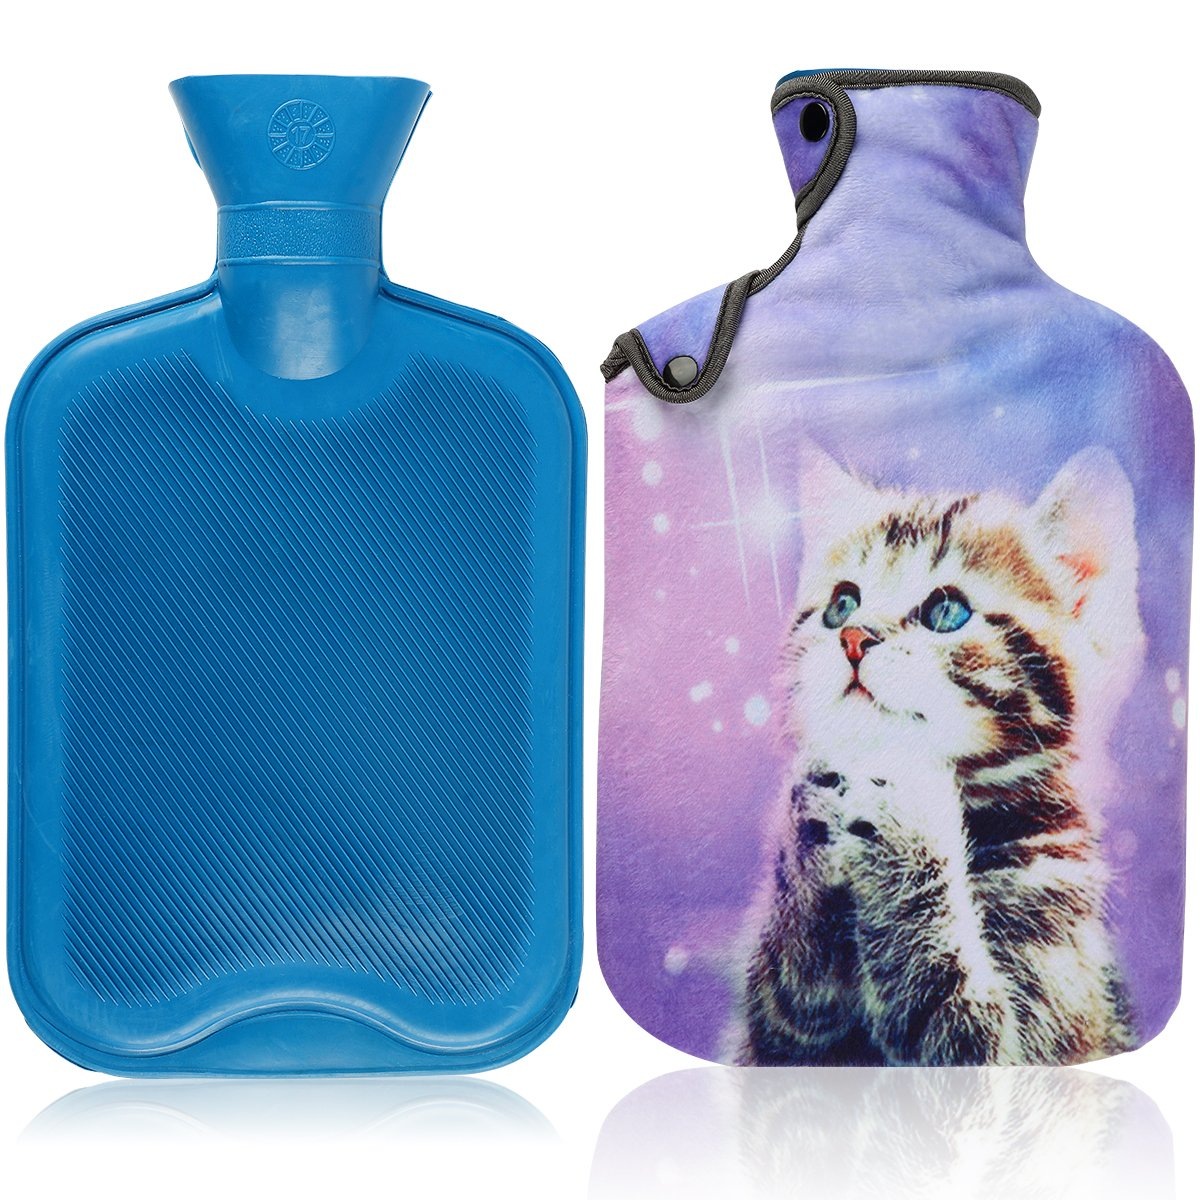 AUPET Hot Water Bottle & Cover Set, 2 Liters Premium Classic Rubber Hot Water Bottle with Super Luxurious Cozy Soft Flannel Cover Set, Great For Pain Relief, Hot and Cold Therapy (Purple Wish Cat)